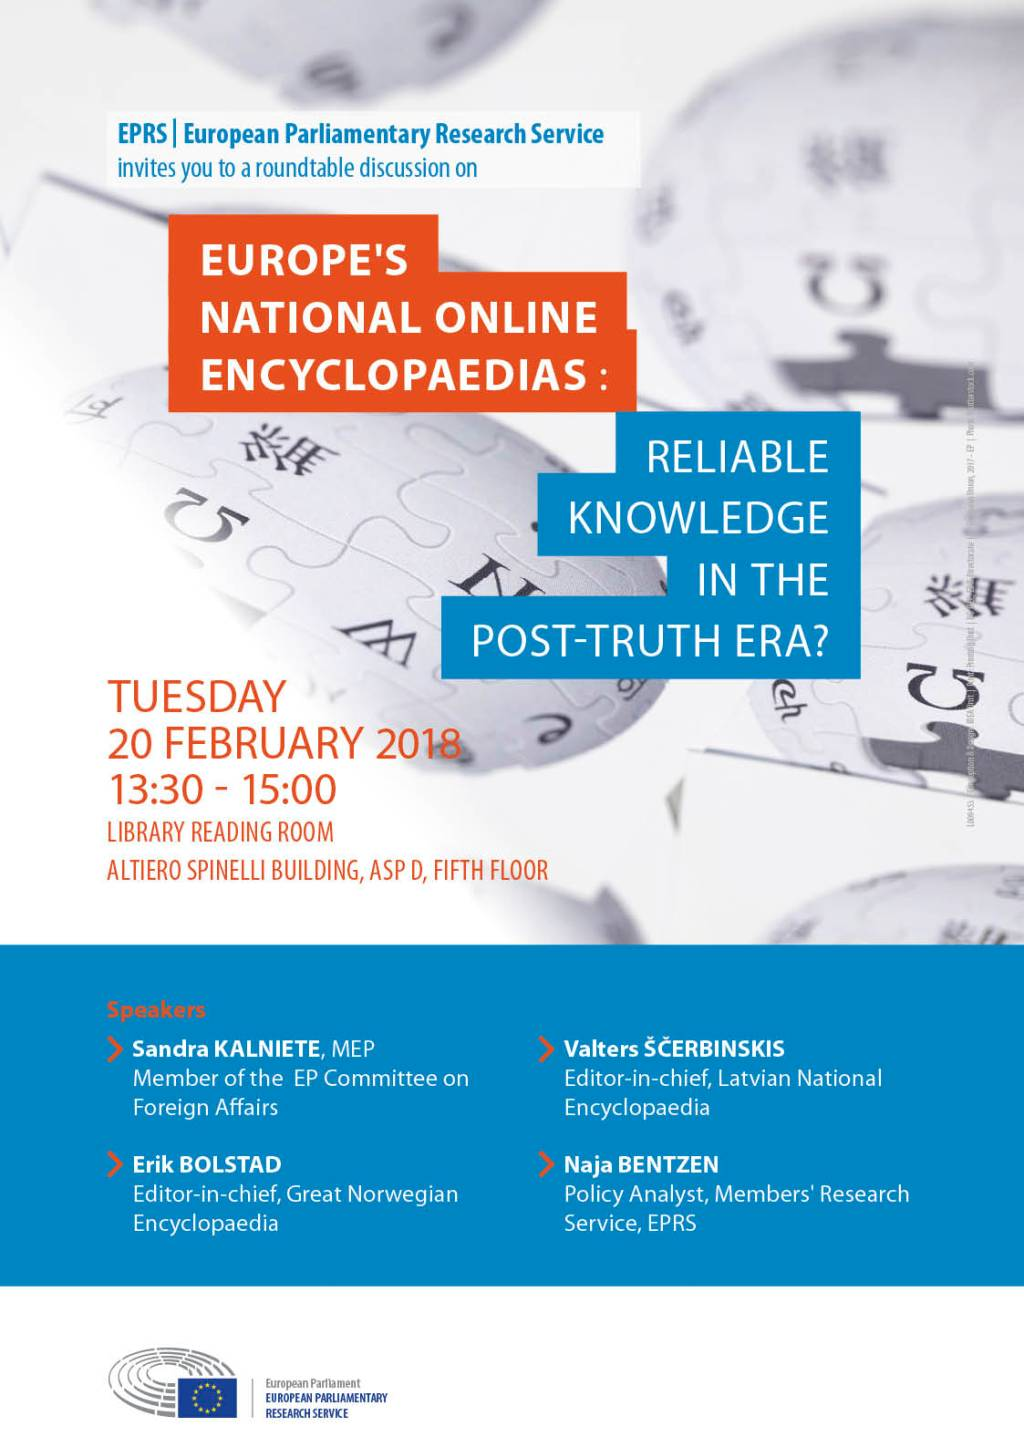 Europe's online encyclopaedias: Reliable knowledge for all in the post-fact era?